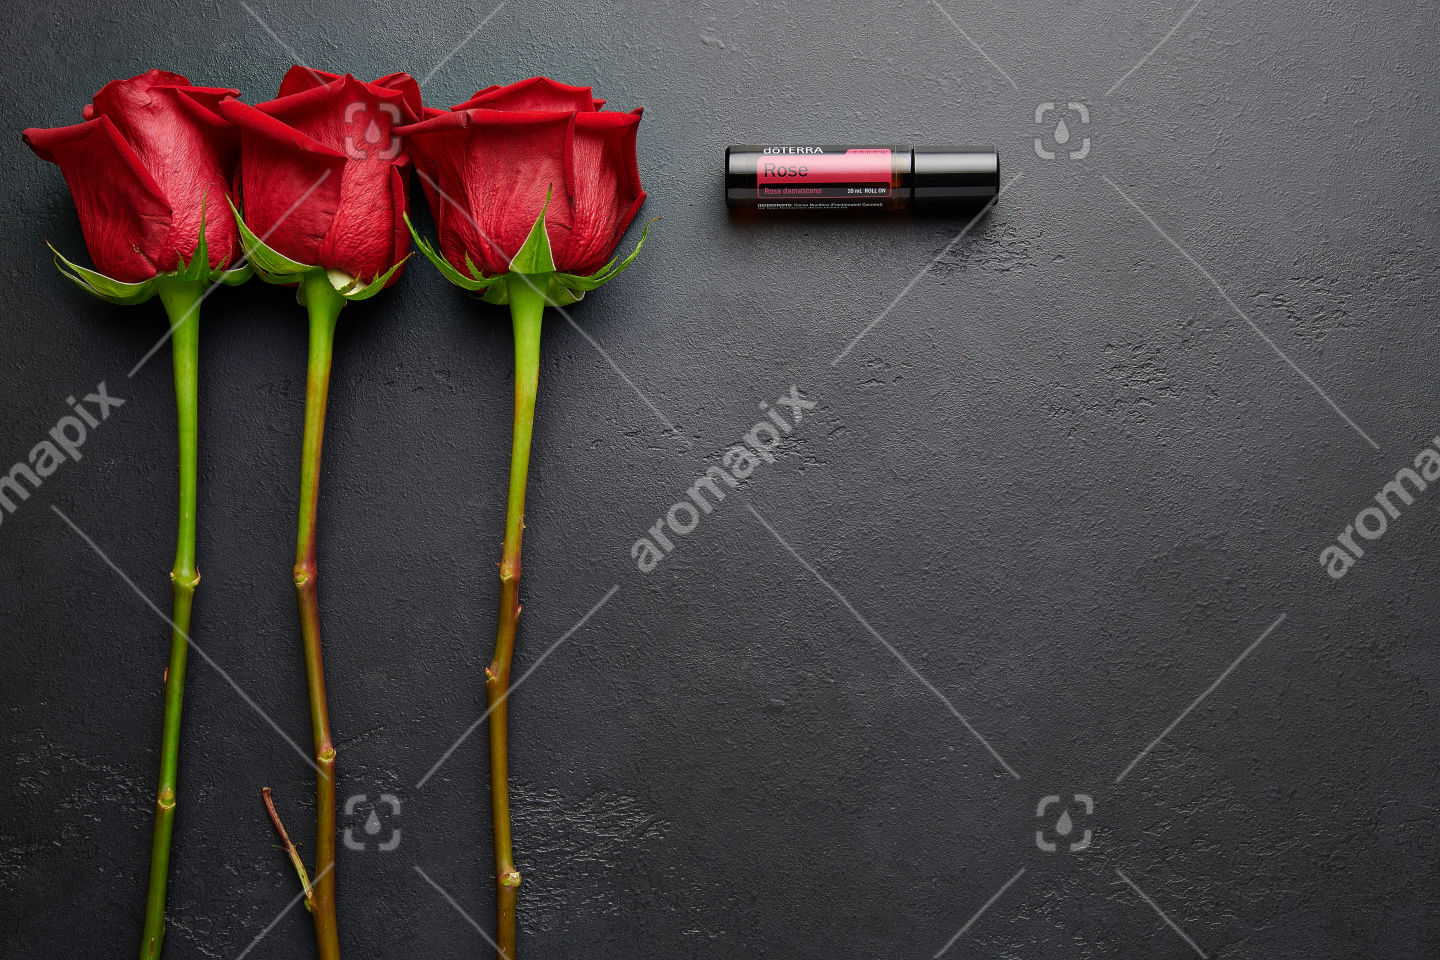 doTERRA Rose with rose stems on black